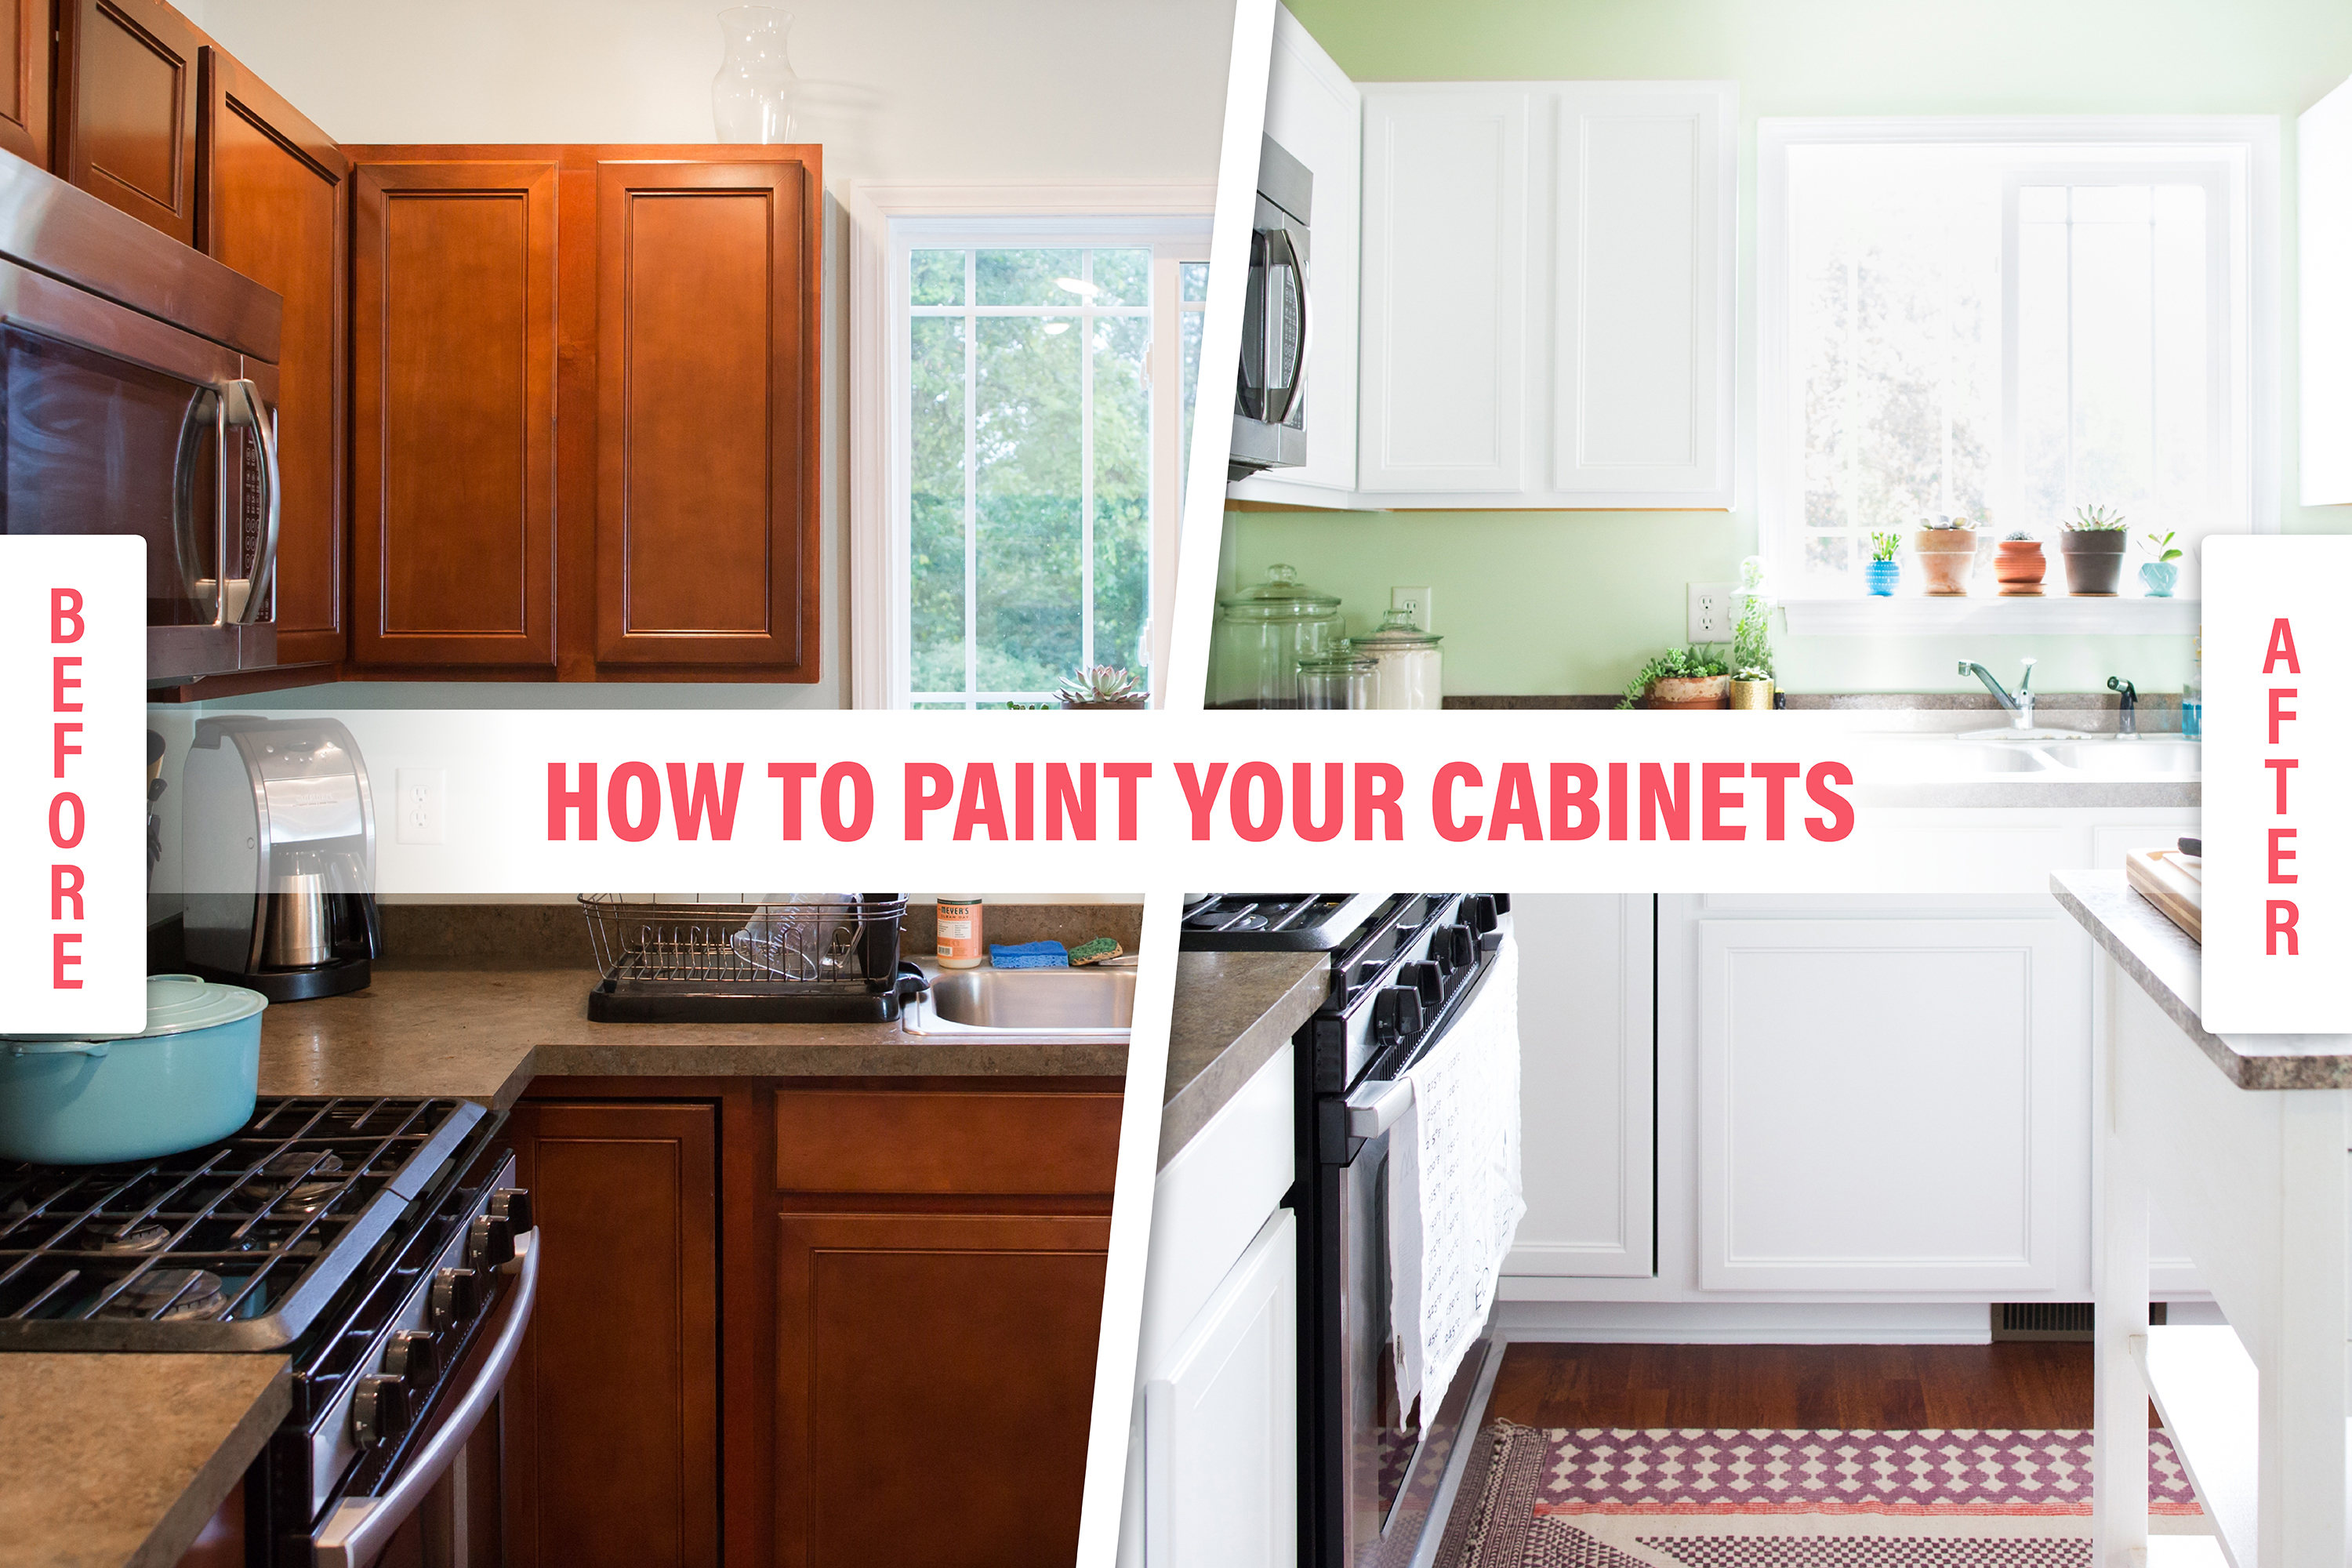 How How To Prep And Paint Kitchen Cabinets can Save You Time, Stress, and Money.